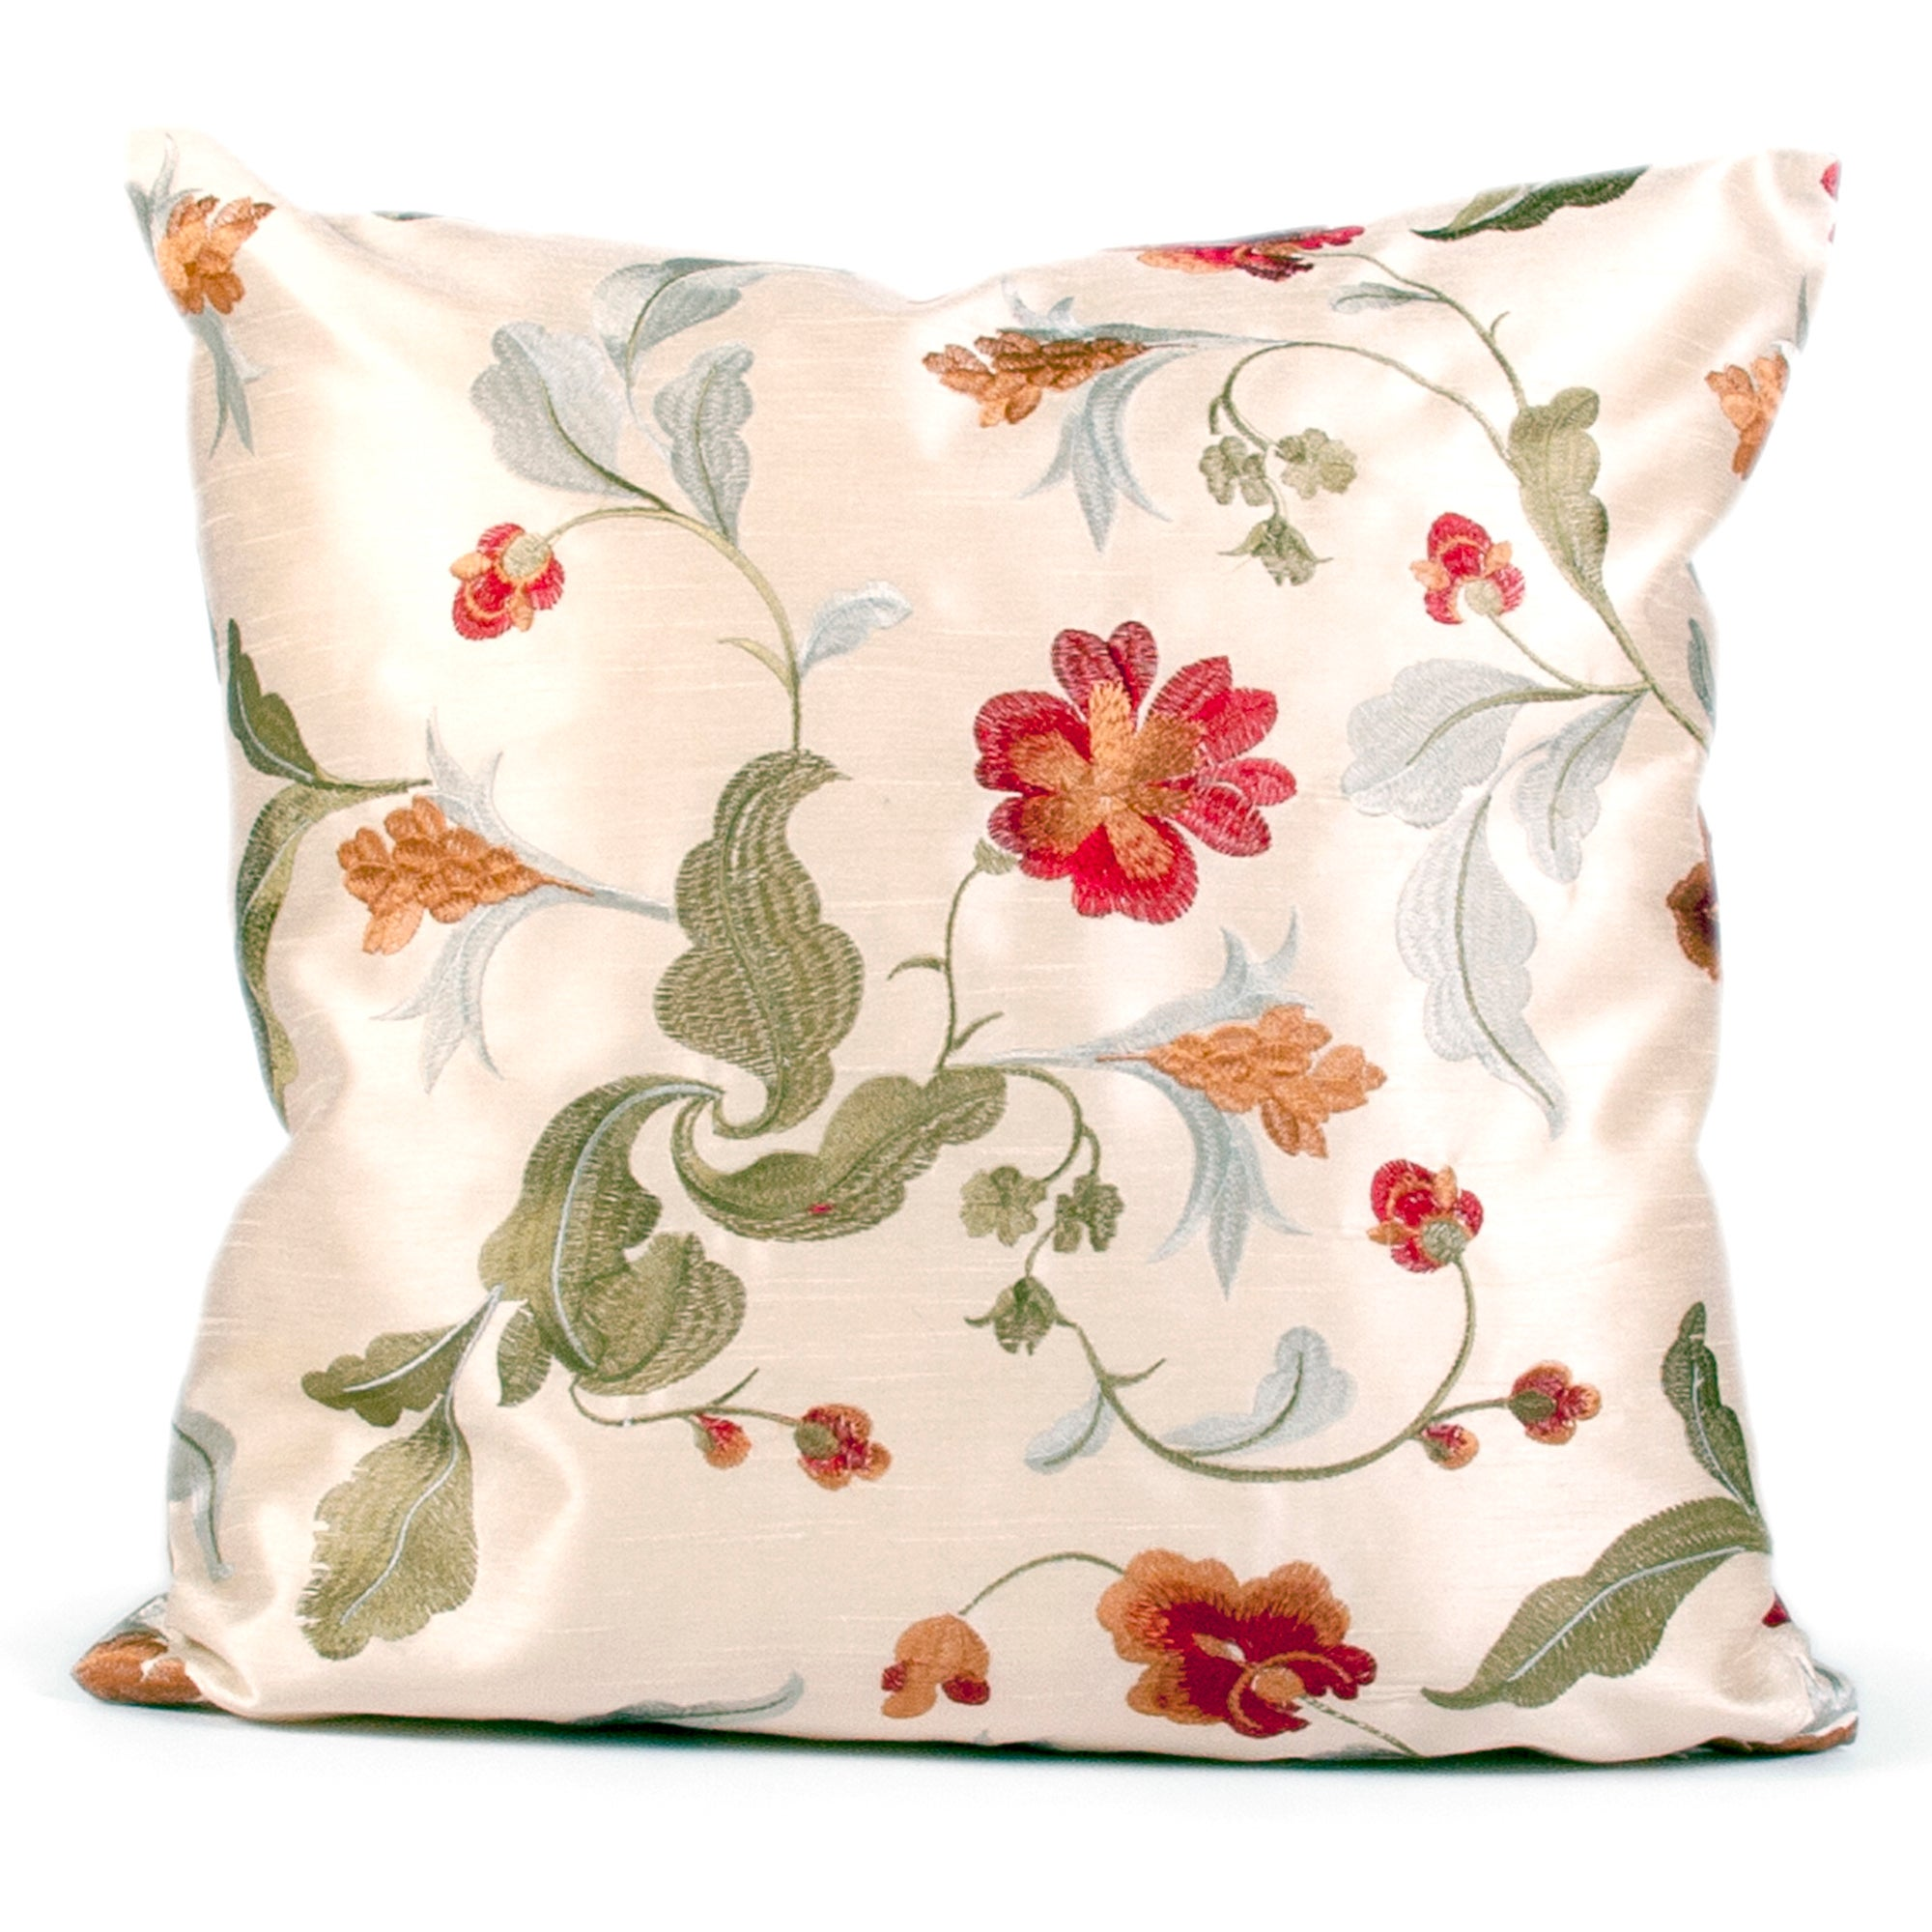 Adrianna Embroided Floral Cushion